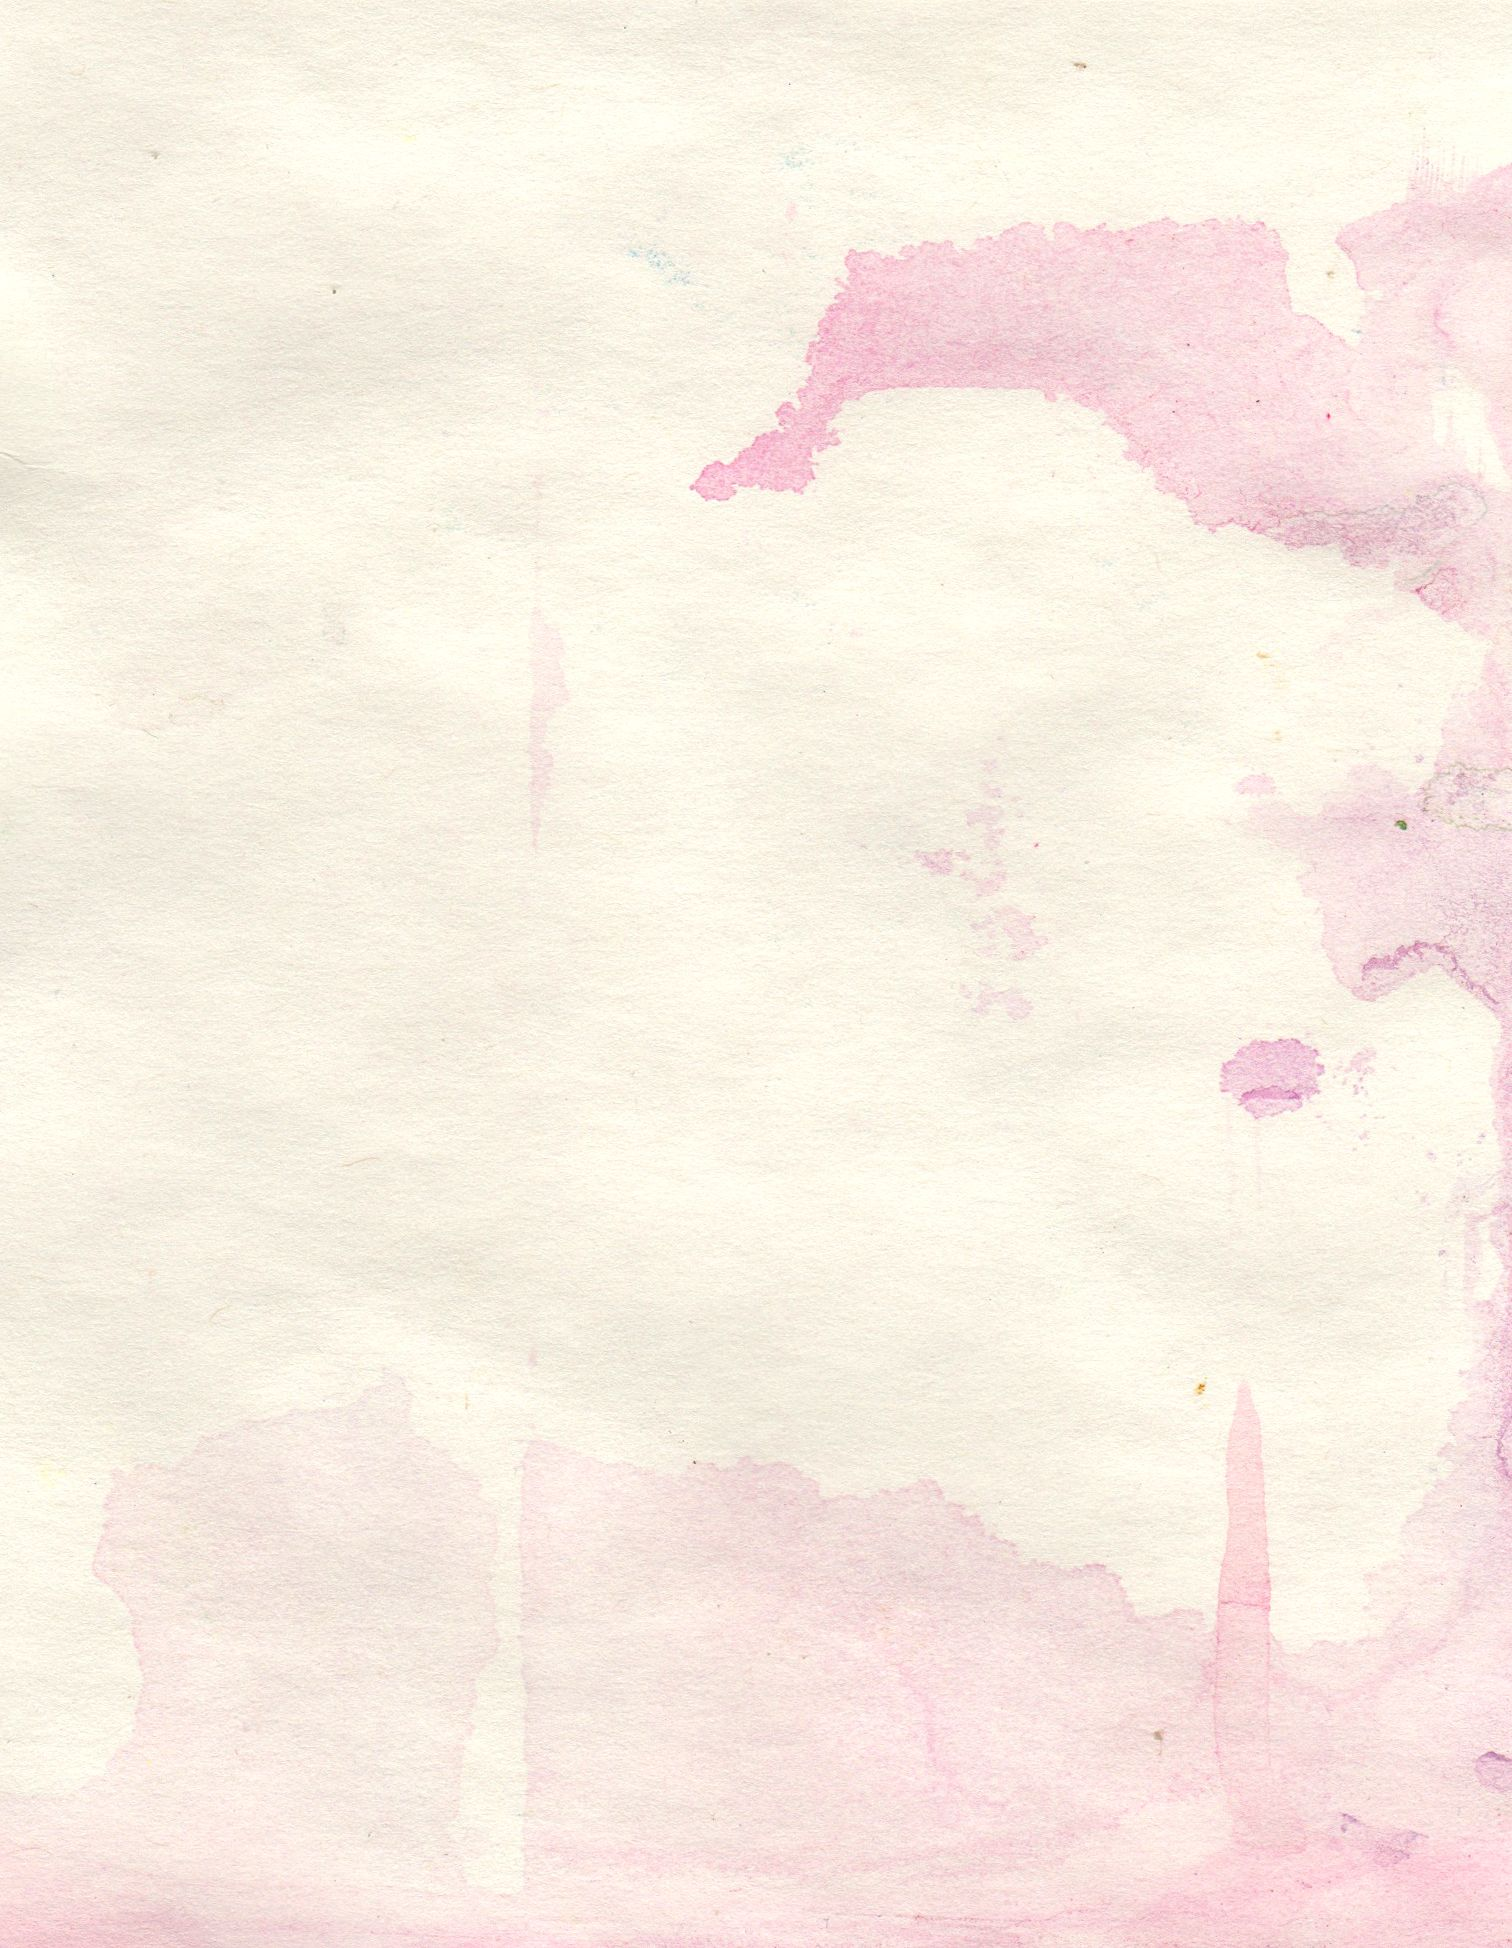 10 Free High Res Watercolor Textures Watercolor Texture